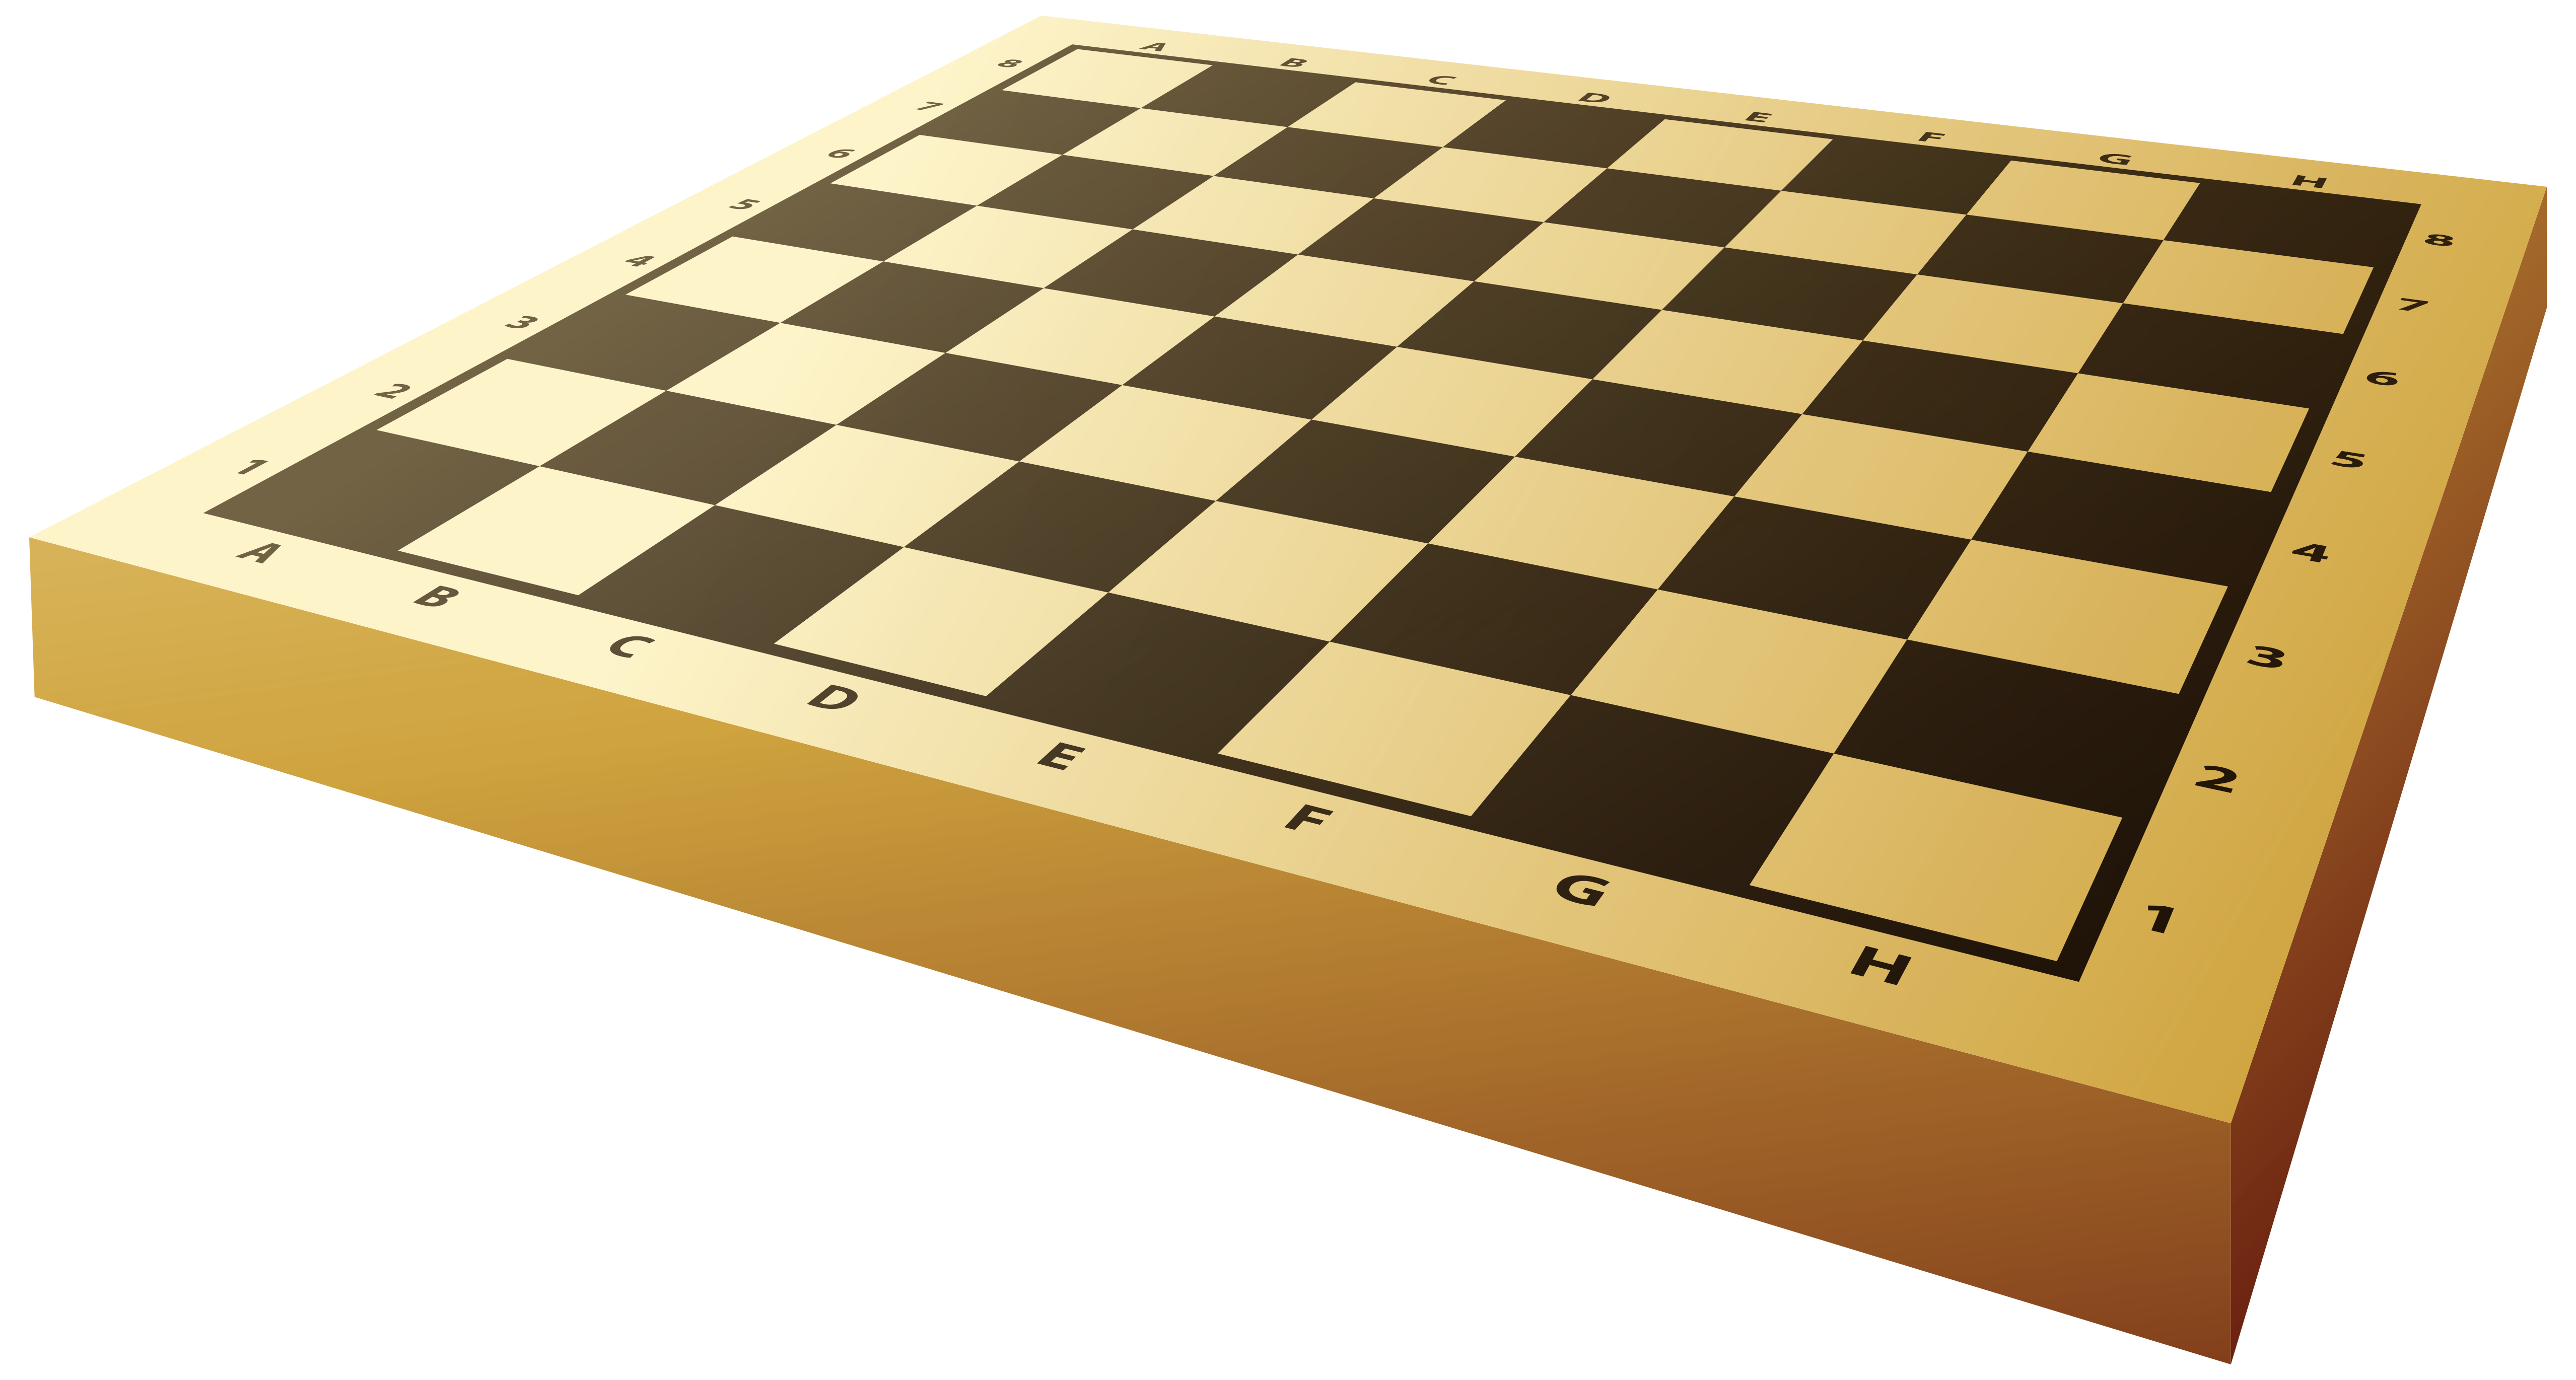 Safe clipart empty. Chessboard png best web